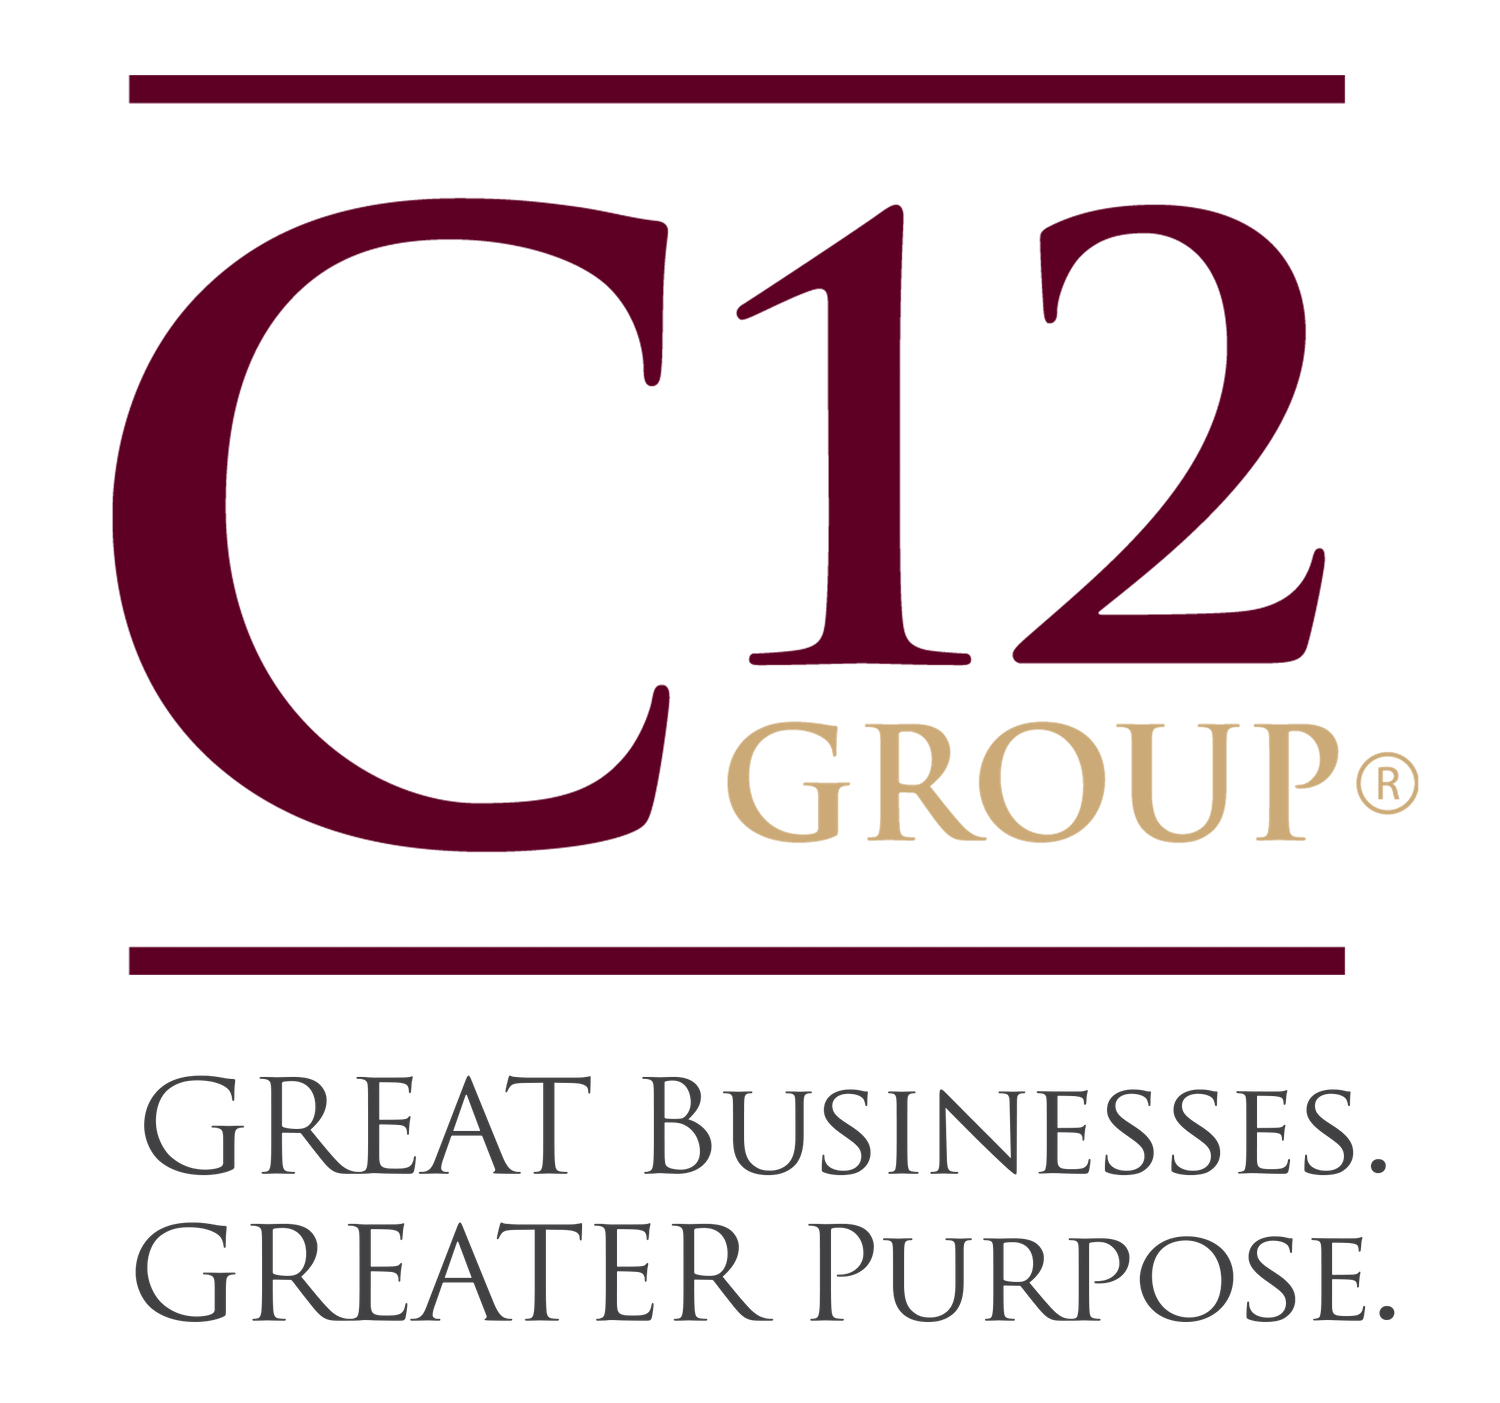 cb2f7205157b2a5aa984609318652bdb-largest-network-of-christian-business-advisory-groups--announces-further-expansion-in-northeast-florida.png